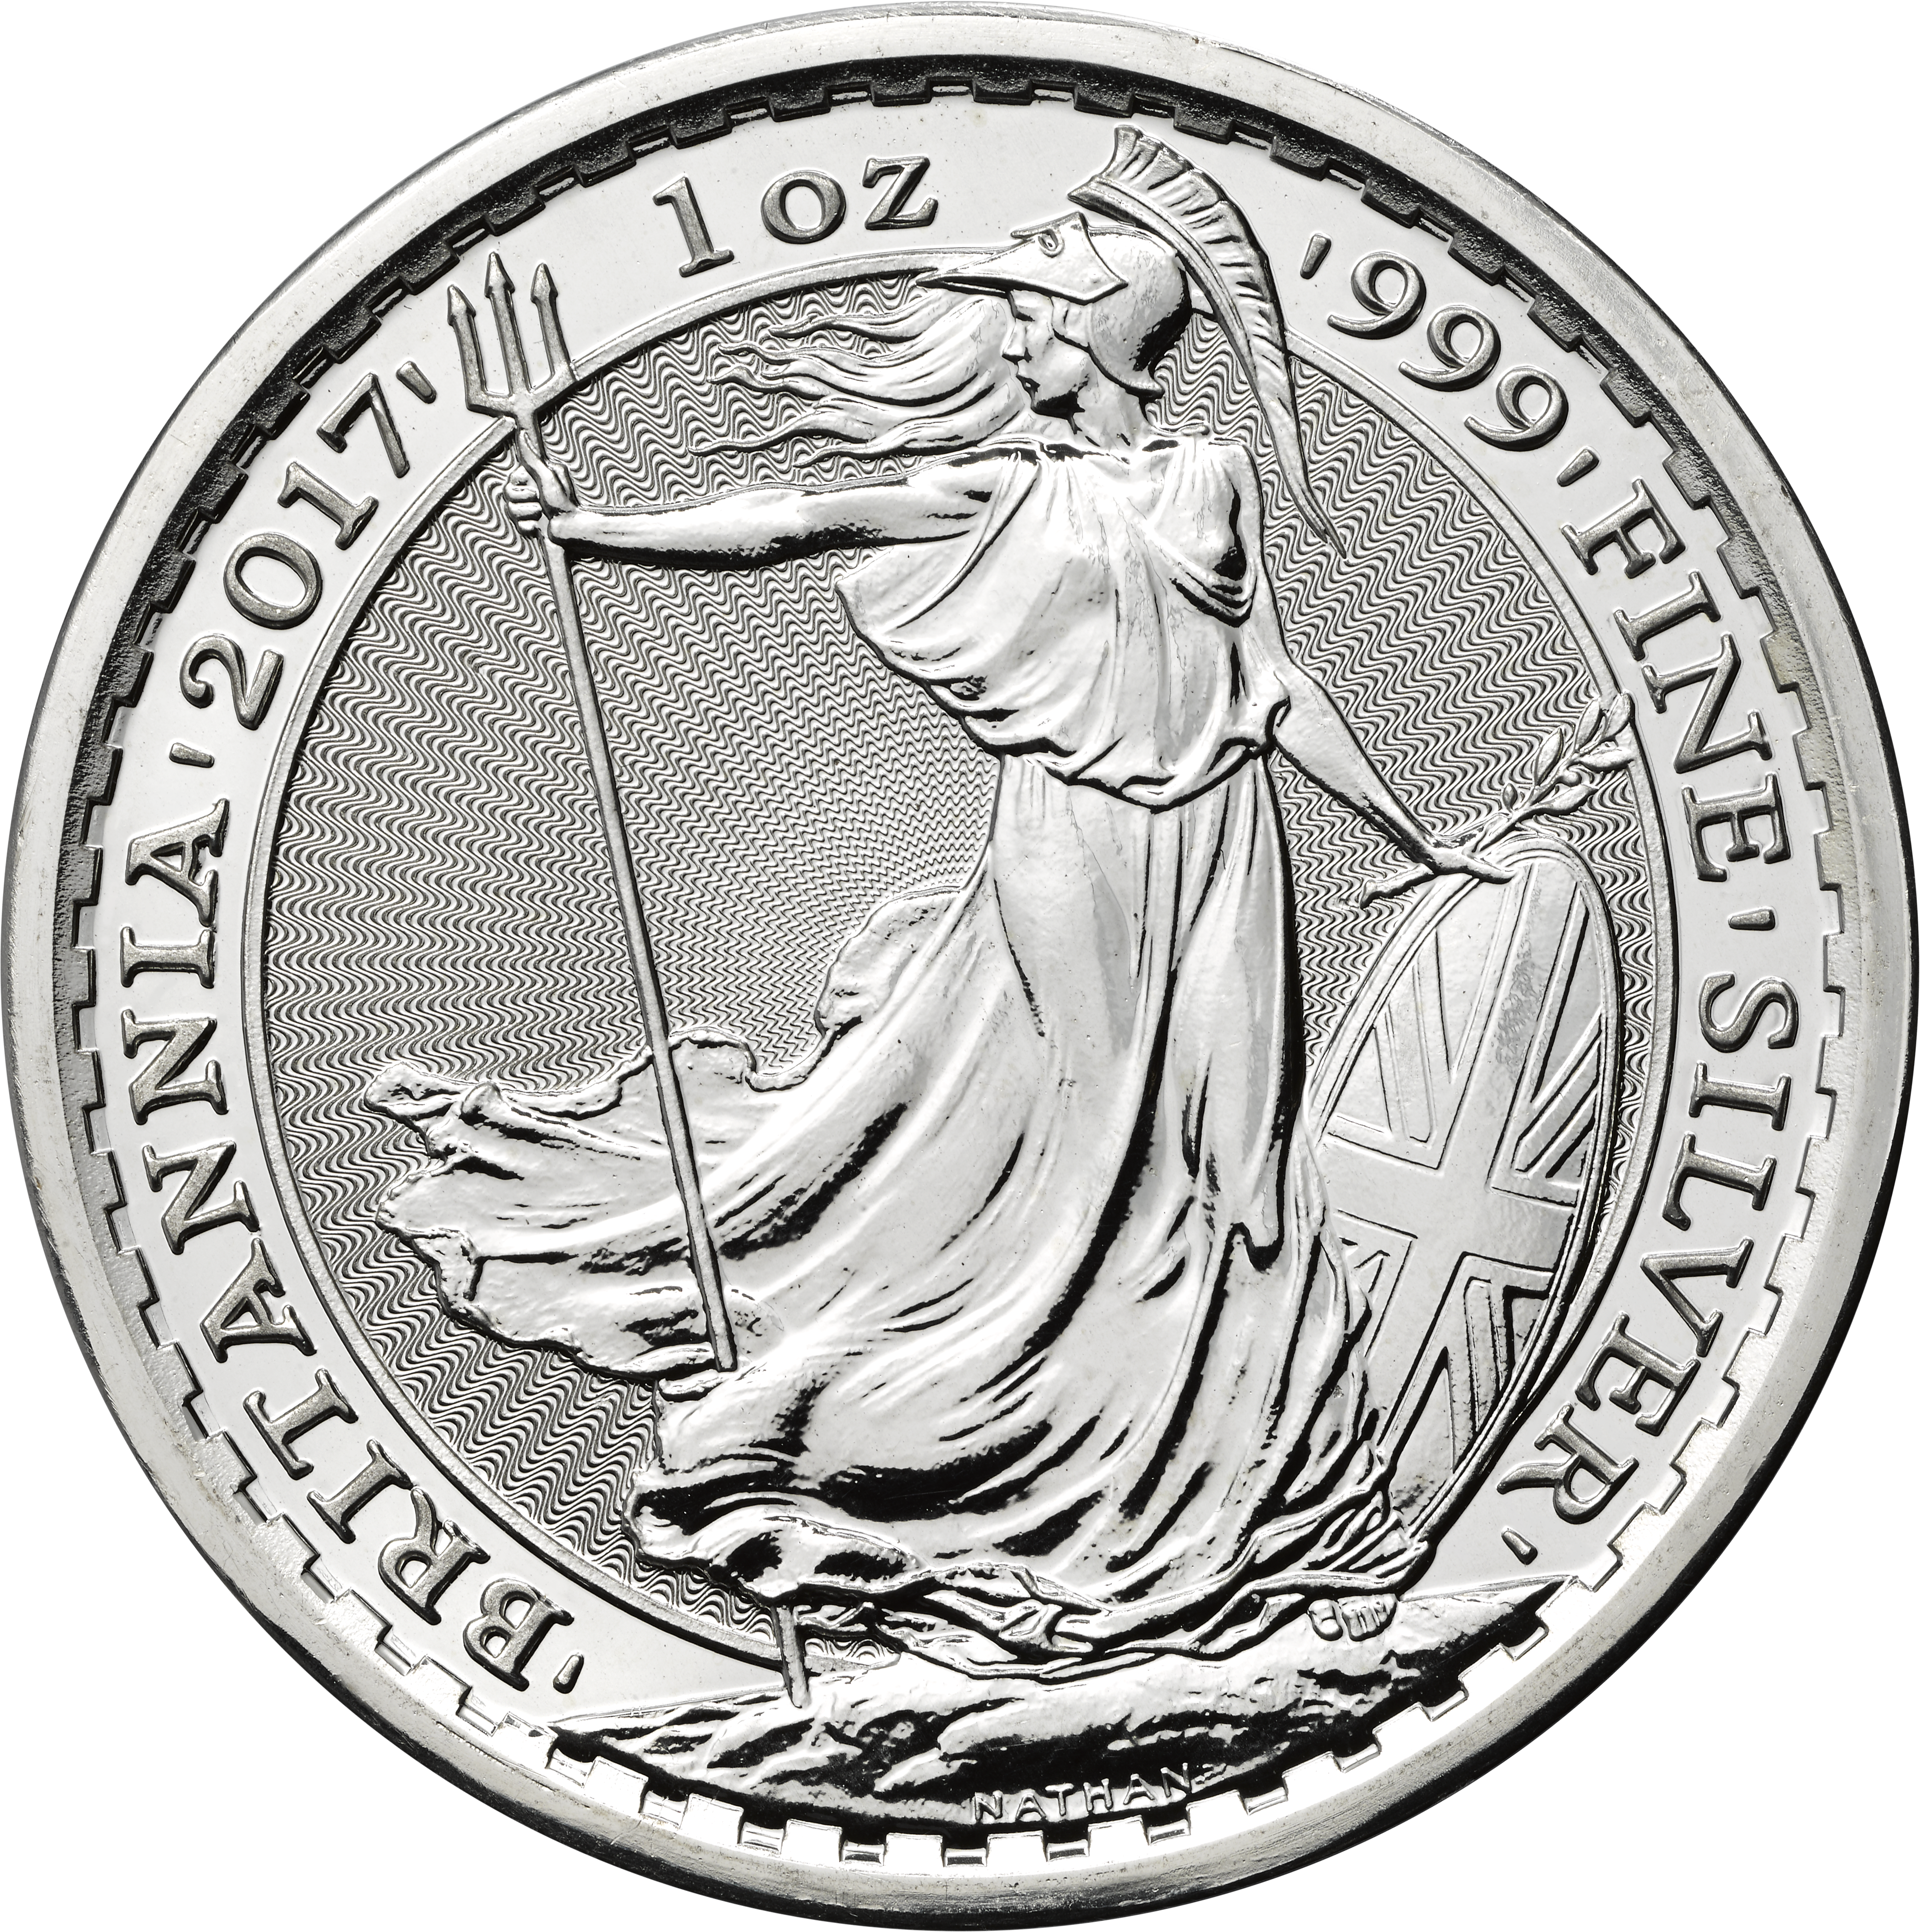 Silver 1oz 2017 Britannia edged bullion YOTR rev uks04899